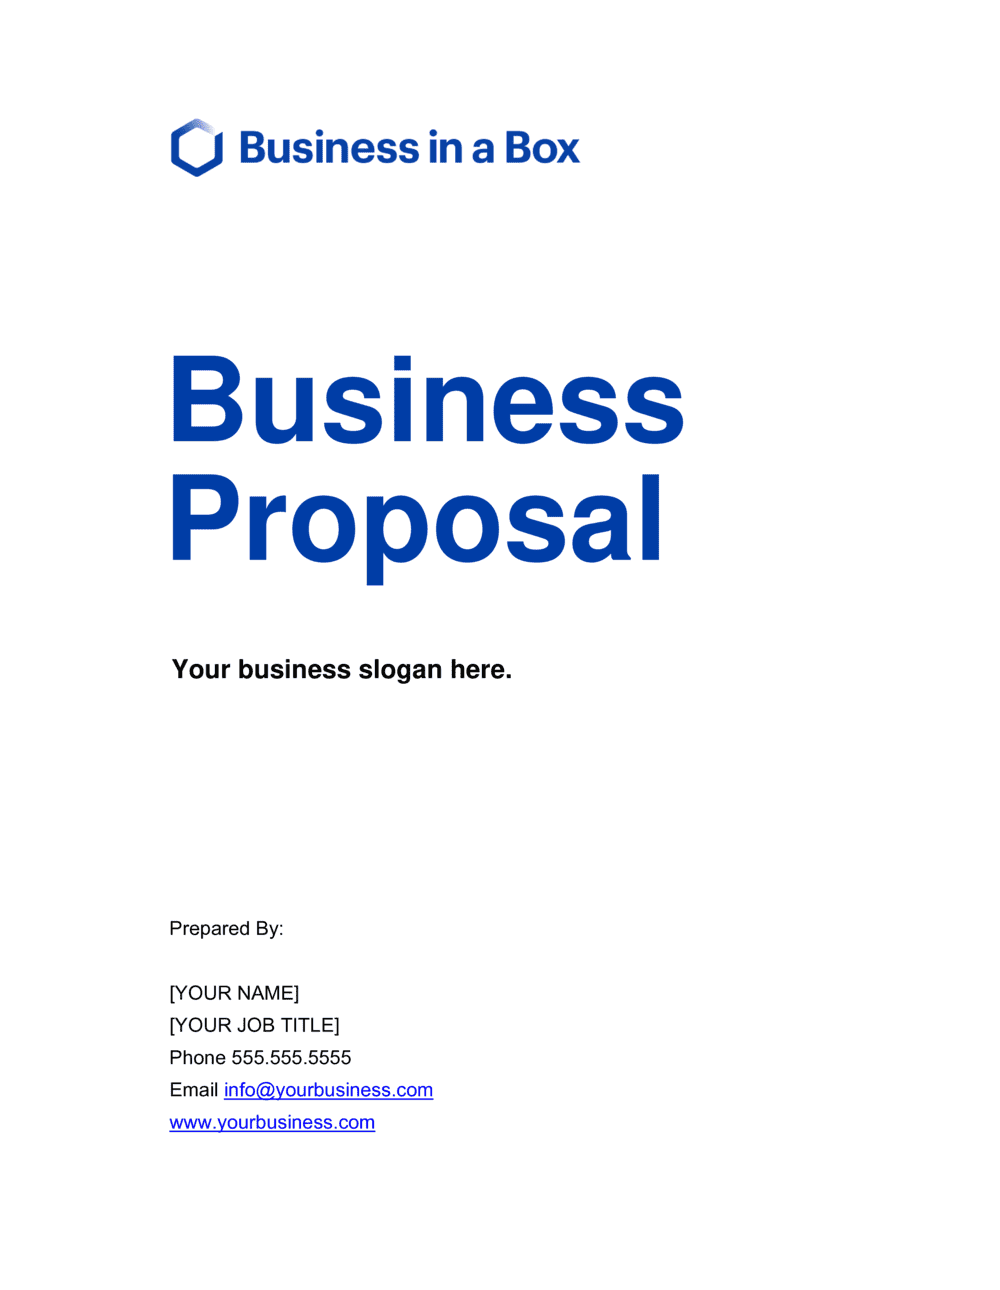 Business-in-a-Box's Business Proposal - Short Template